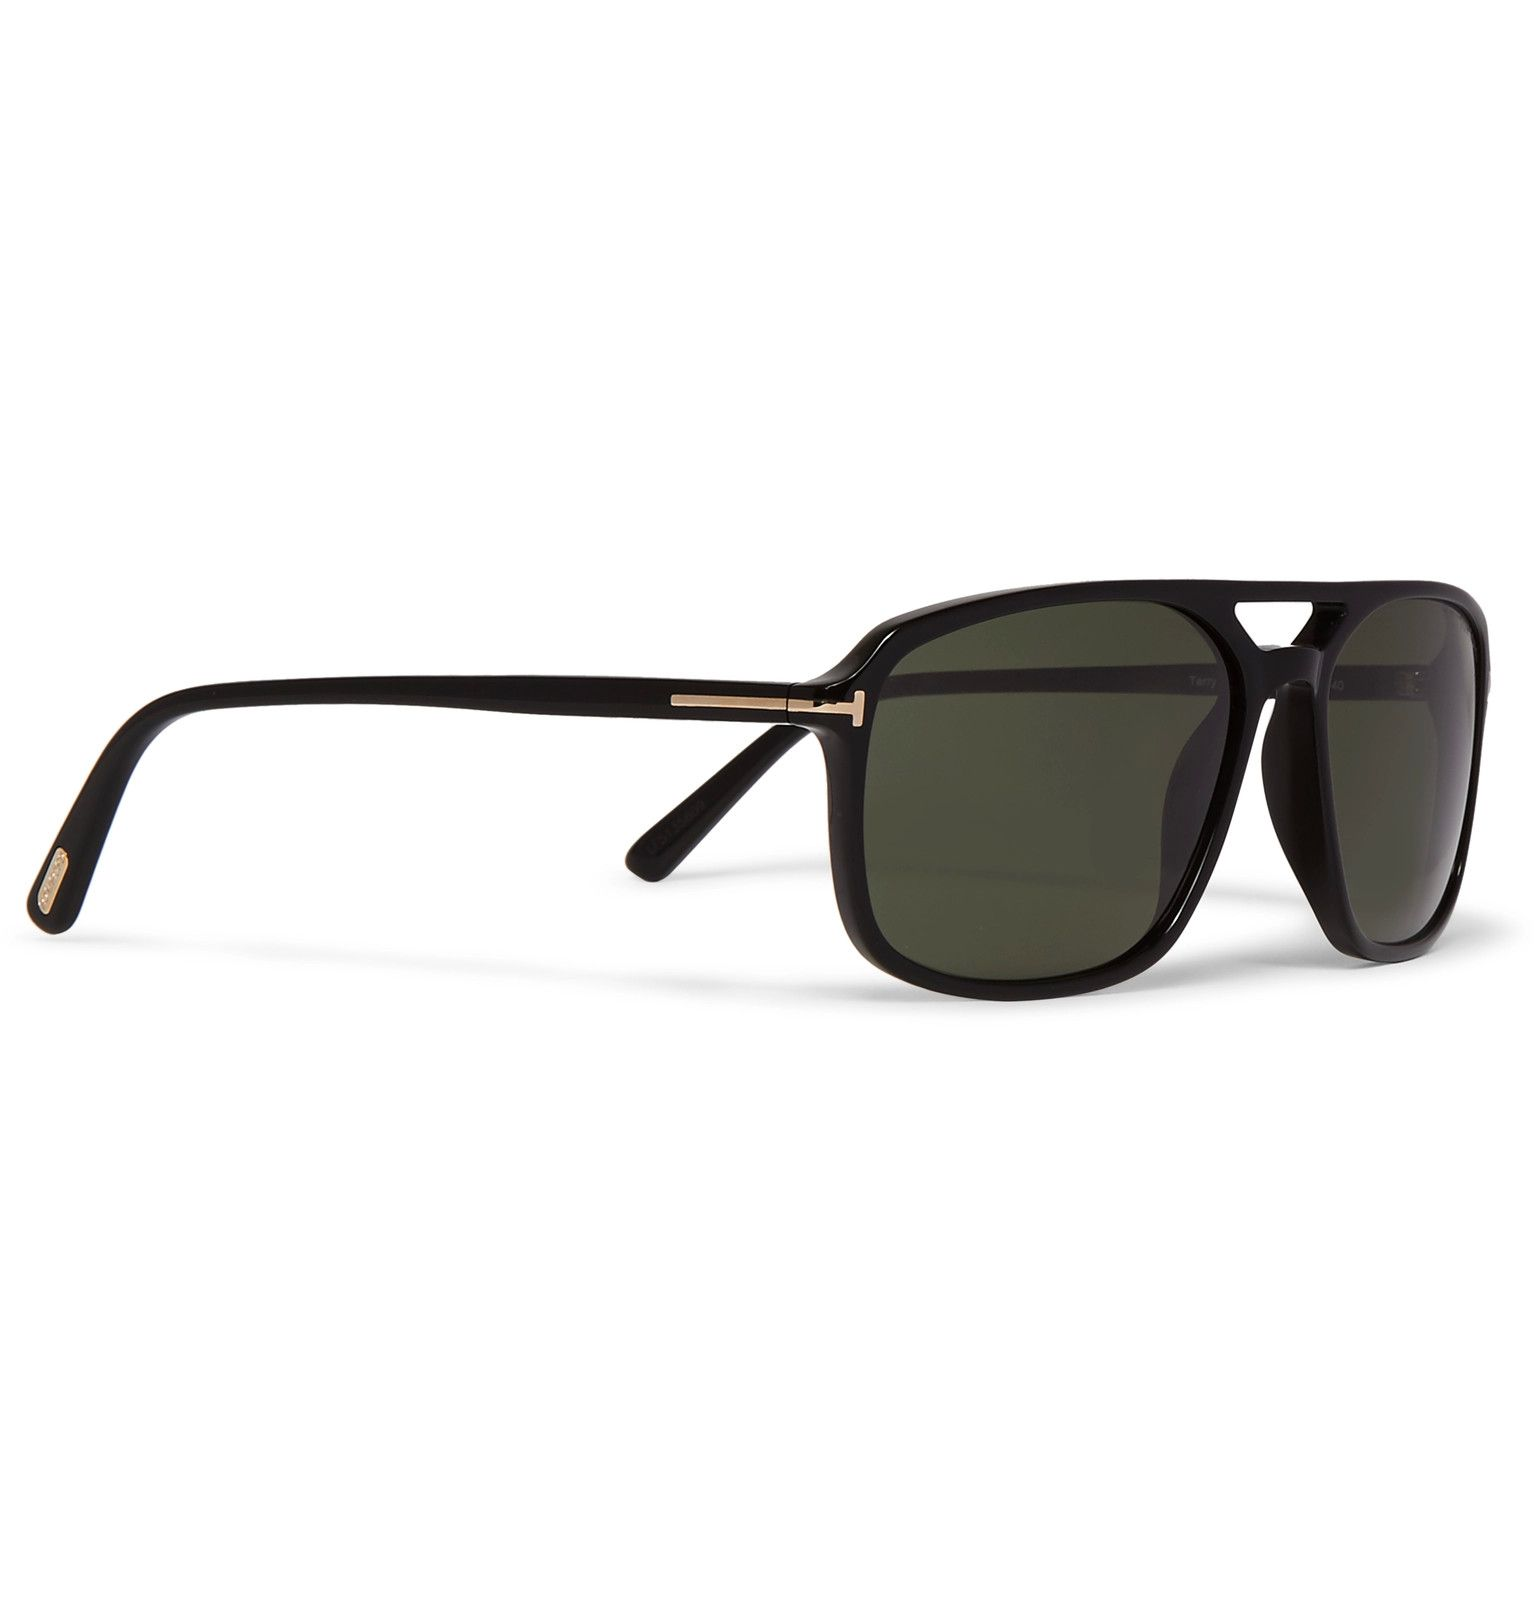 1ff60b501abe8 These TOM FORD  Terry  sunglasses are a geometric take on the classic  aviator style